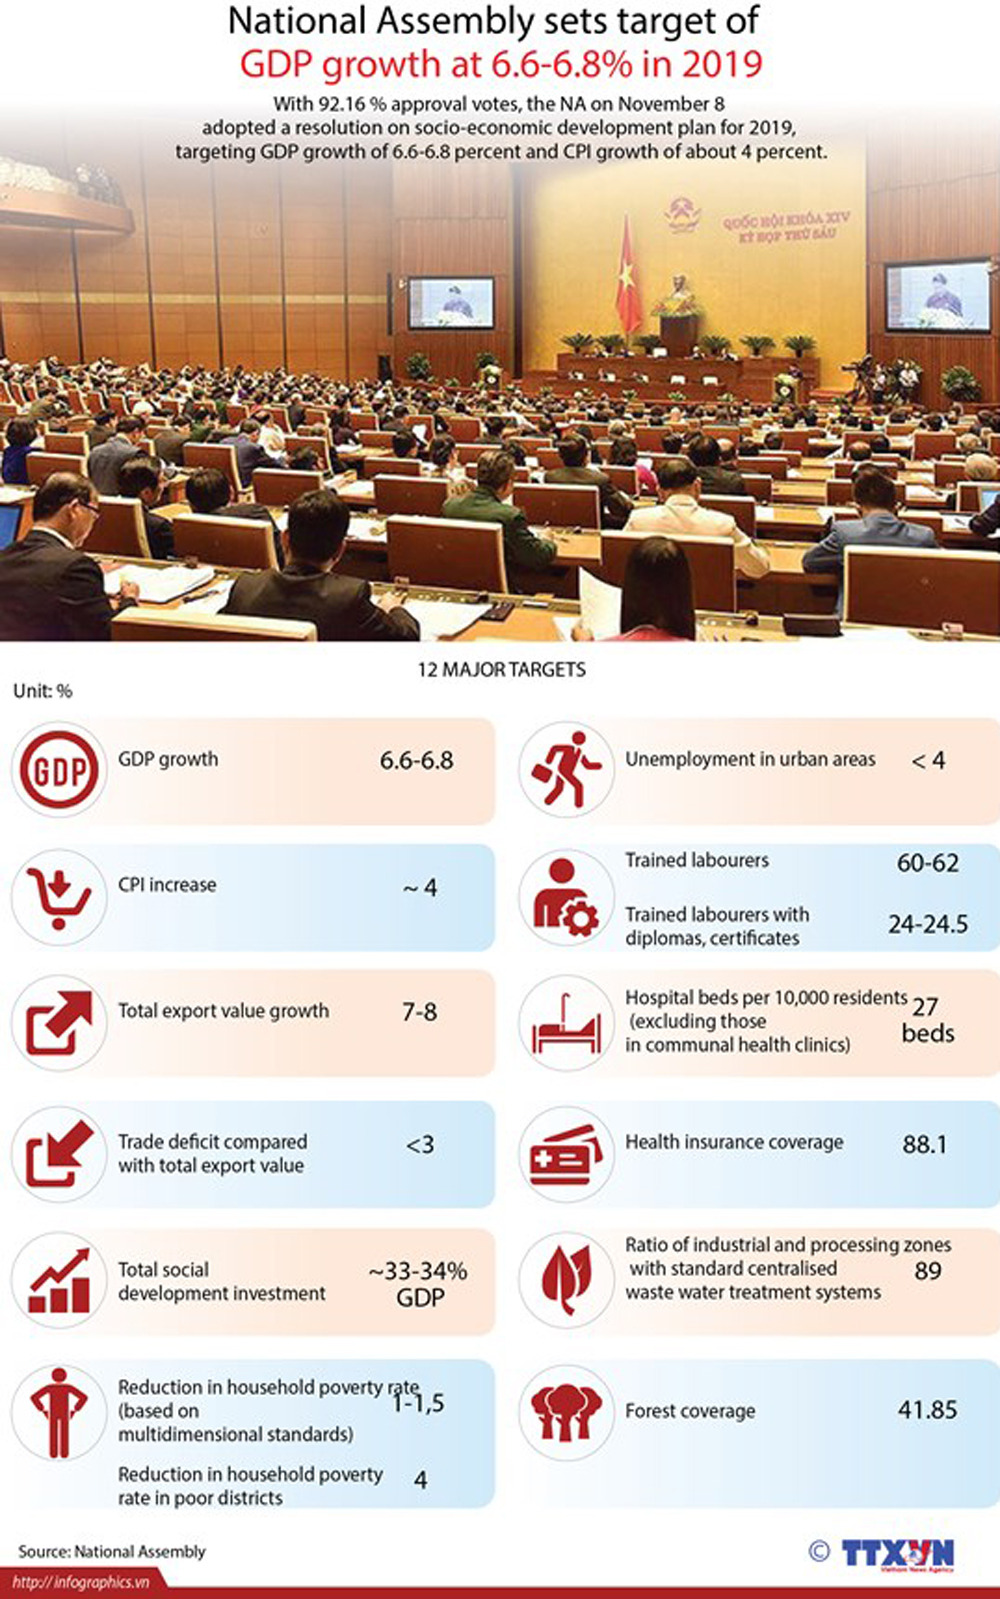 National Assembly, sets target, GDP growth, approval note, socio economic development